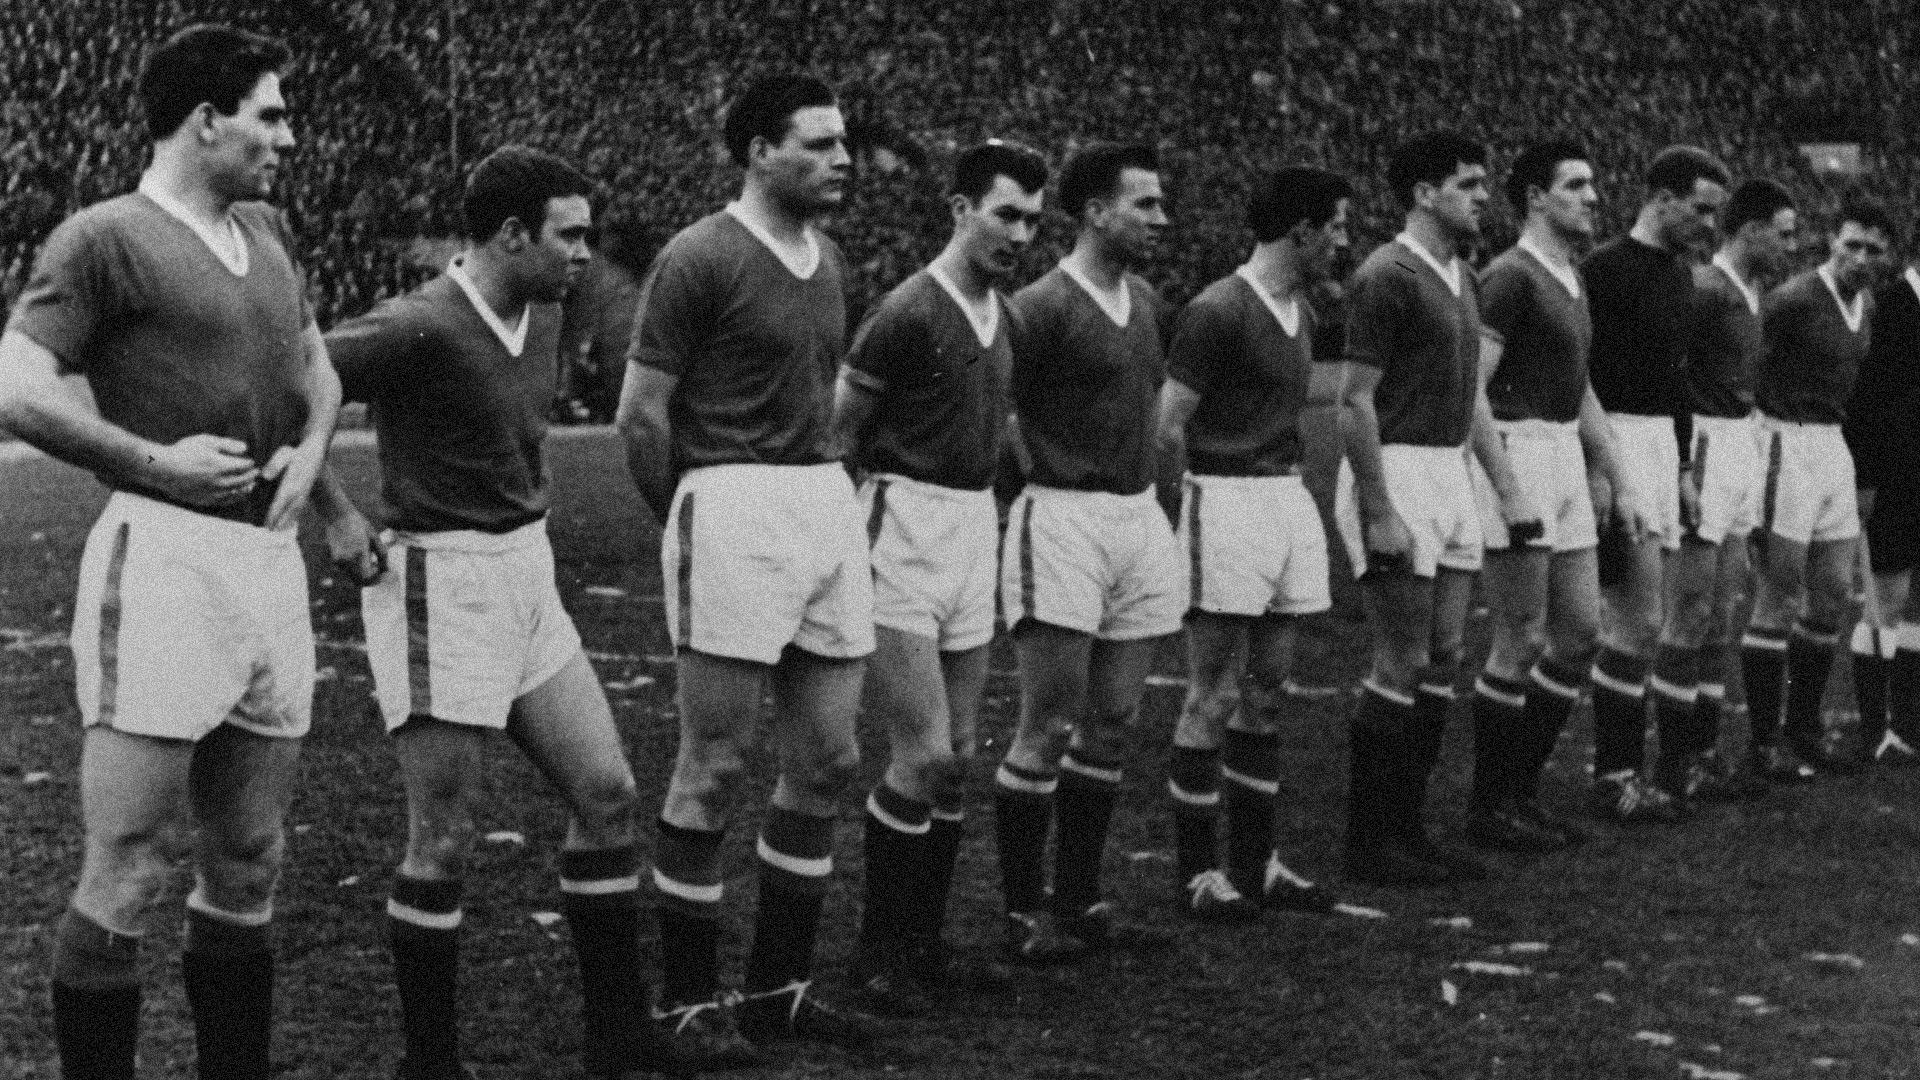 Manchester United line up before the European Cup quarter-final, second leg against Red Star Belgrade in February 1958 - the final game before the Munich Air Disaster